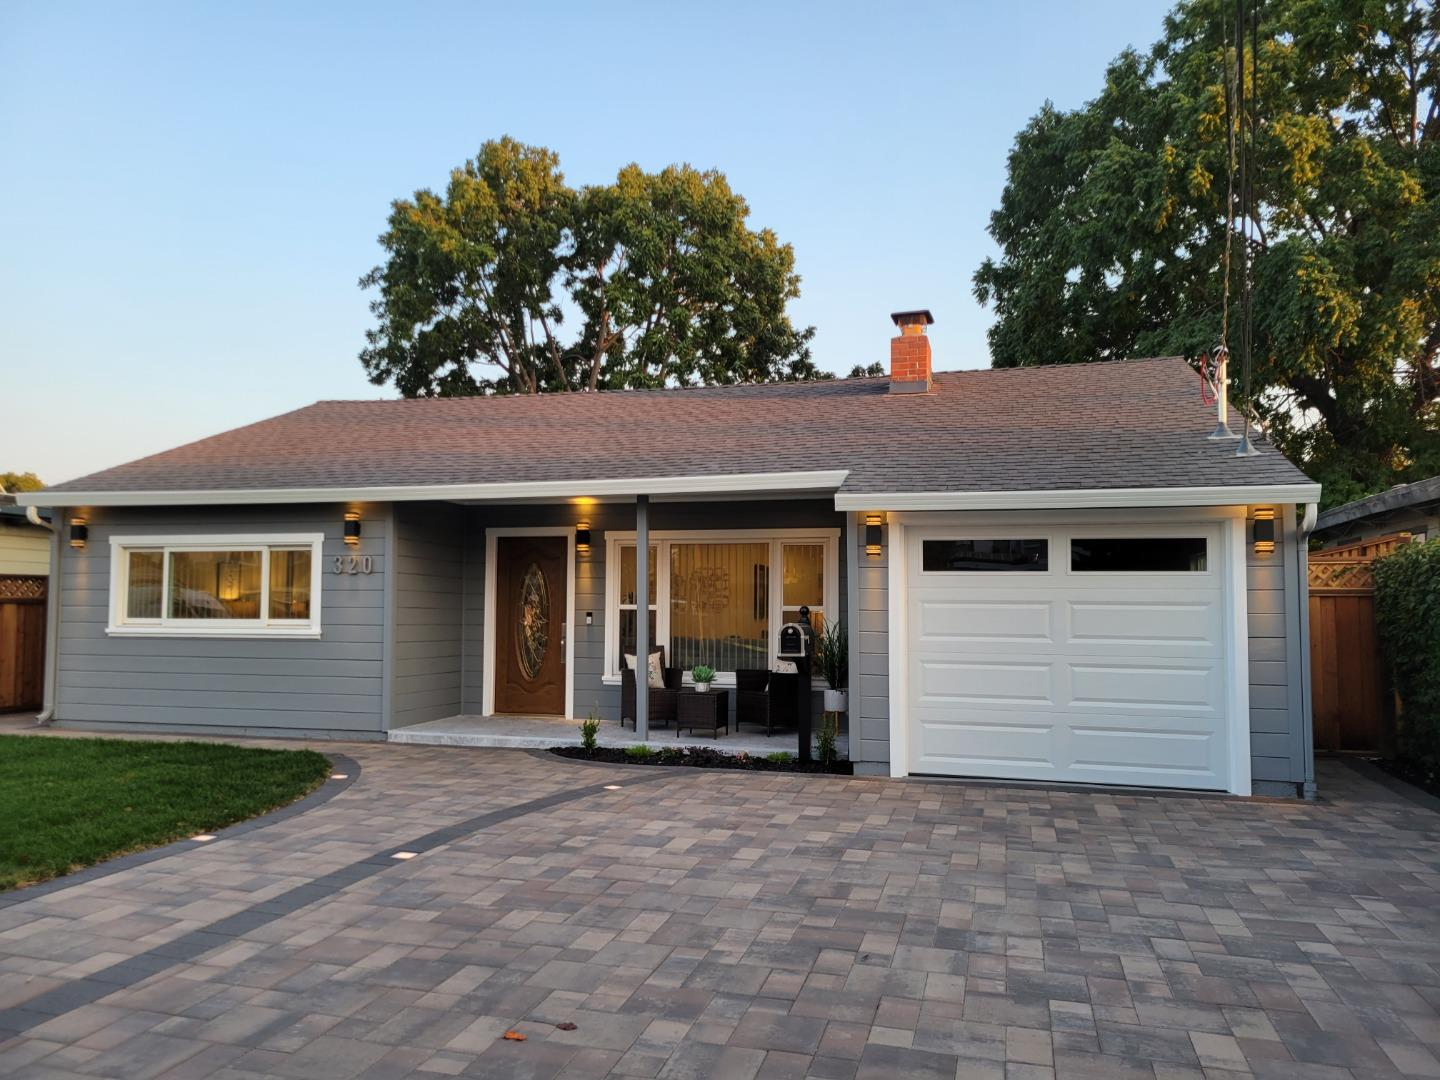 This is simply a BEAUTIFUL home!!  This is the property that you have been looking for.  This home is reasonably priced for the city of Menlo Park. The WOW factor starts when you walk onto the pavers and see the timed lighted walkway, it just gets better from there. Take a close look at all the amenities this home offers. Newly remodeled, with 2 masters, stylish 4-bedroom 3 FULL baths with all NEW Kitchen appliances. Inside laundry area and manicured backyard that feels like an oasis. This is the home for you. Ask about the major community projects within walking distance of this home.